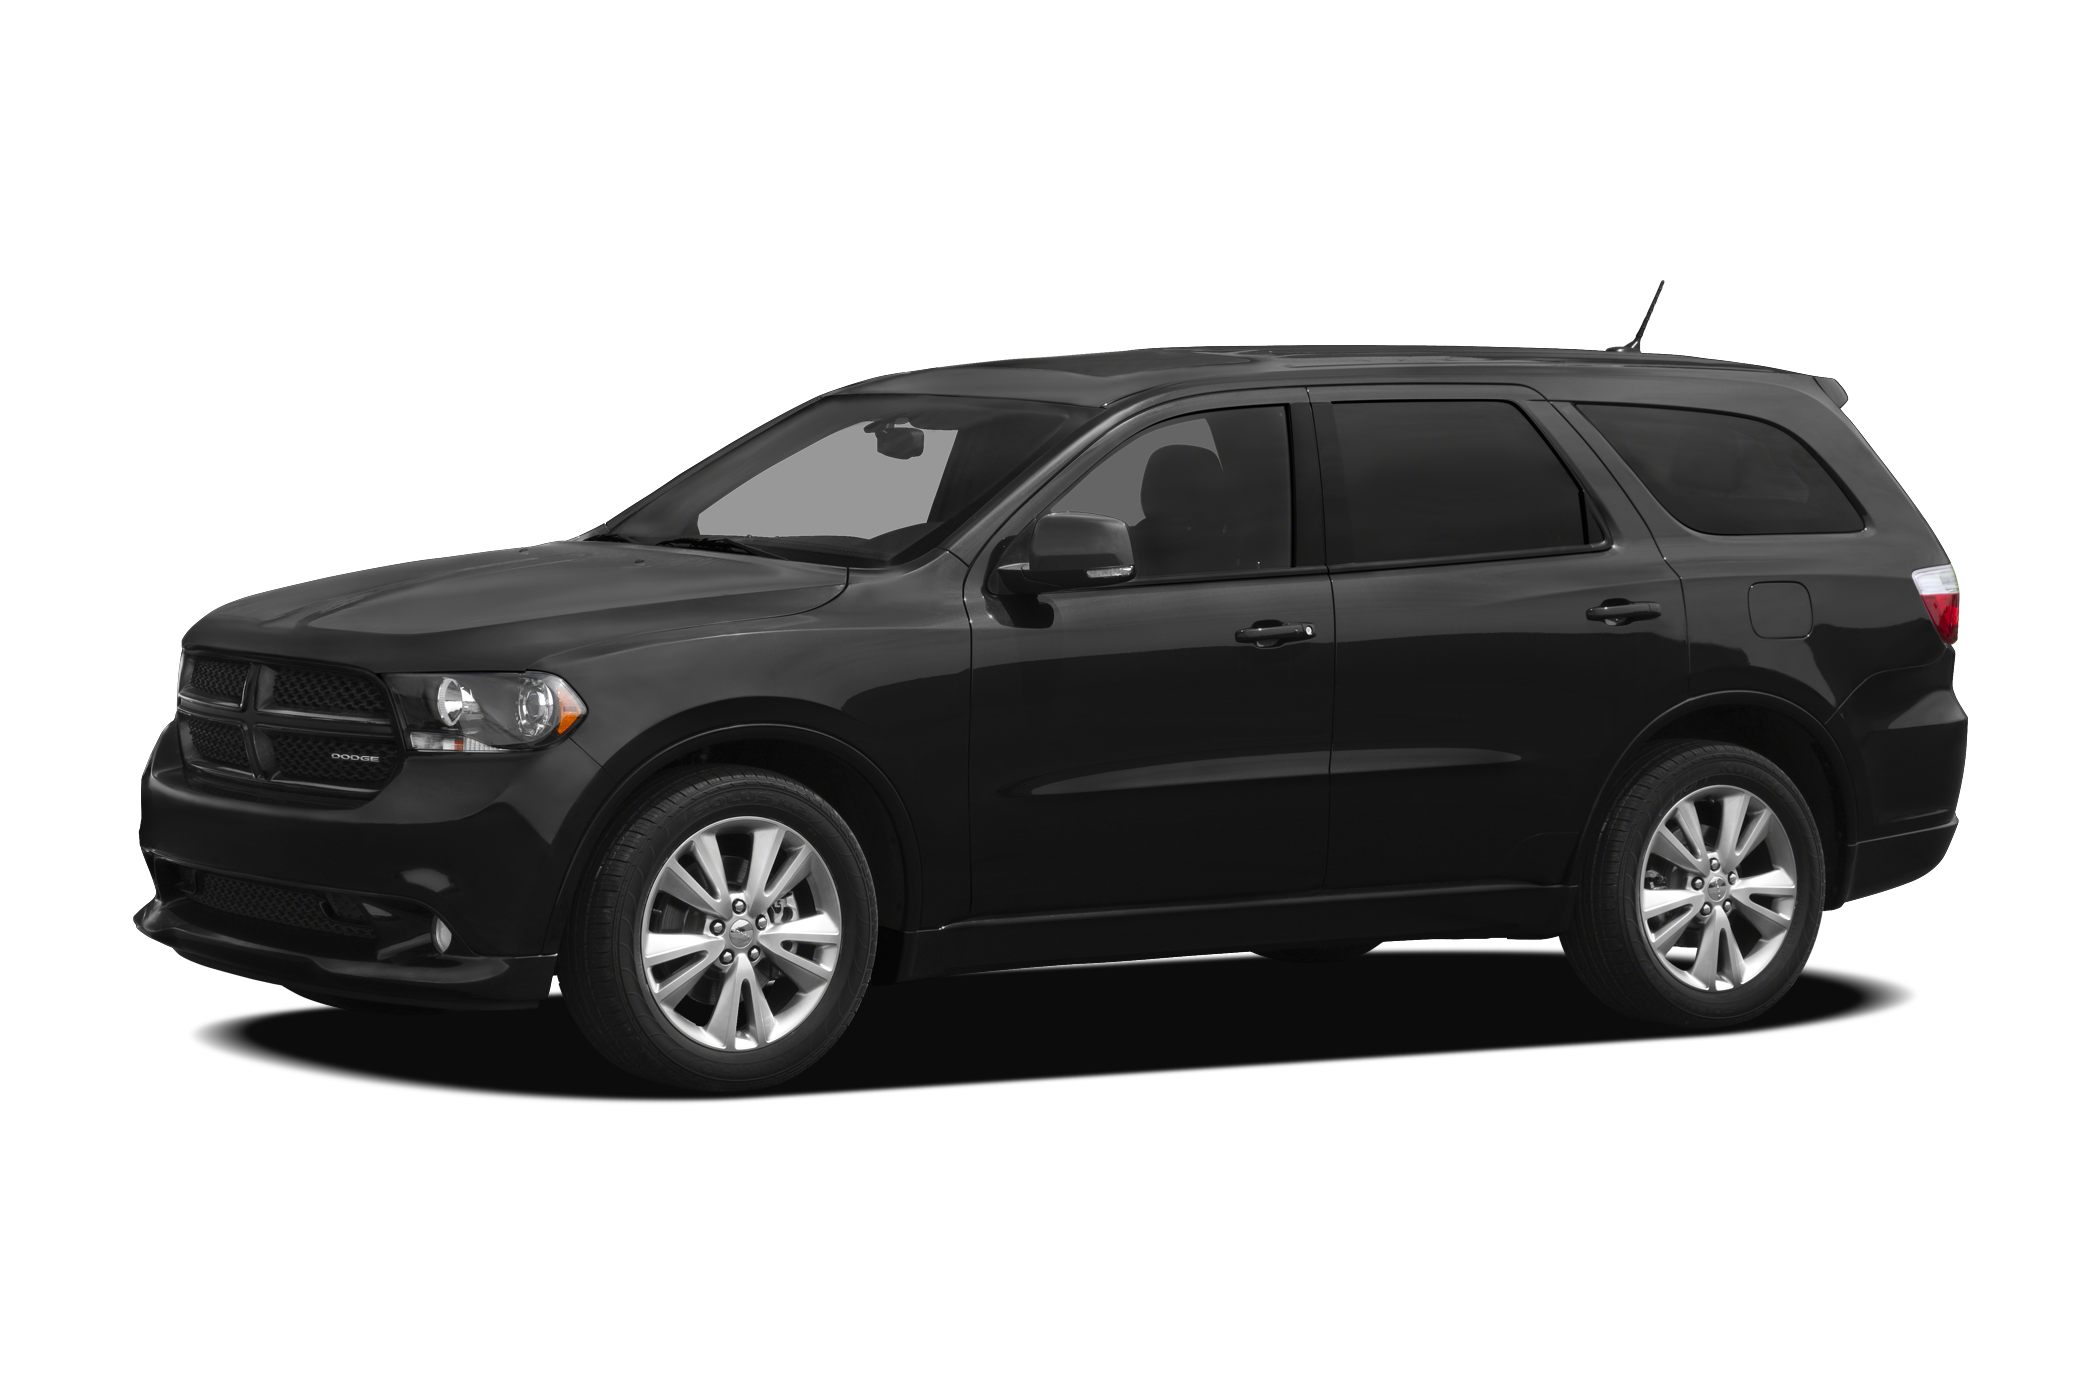 2012 Dodge Durango R/T SUV for sale in Wabash for $32,455 with 45,432 miles